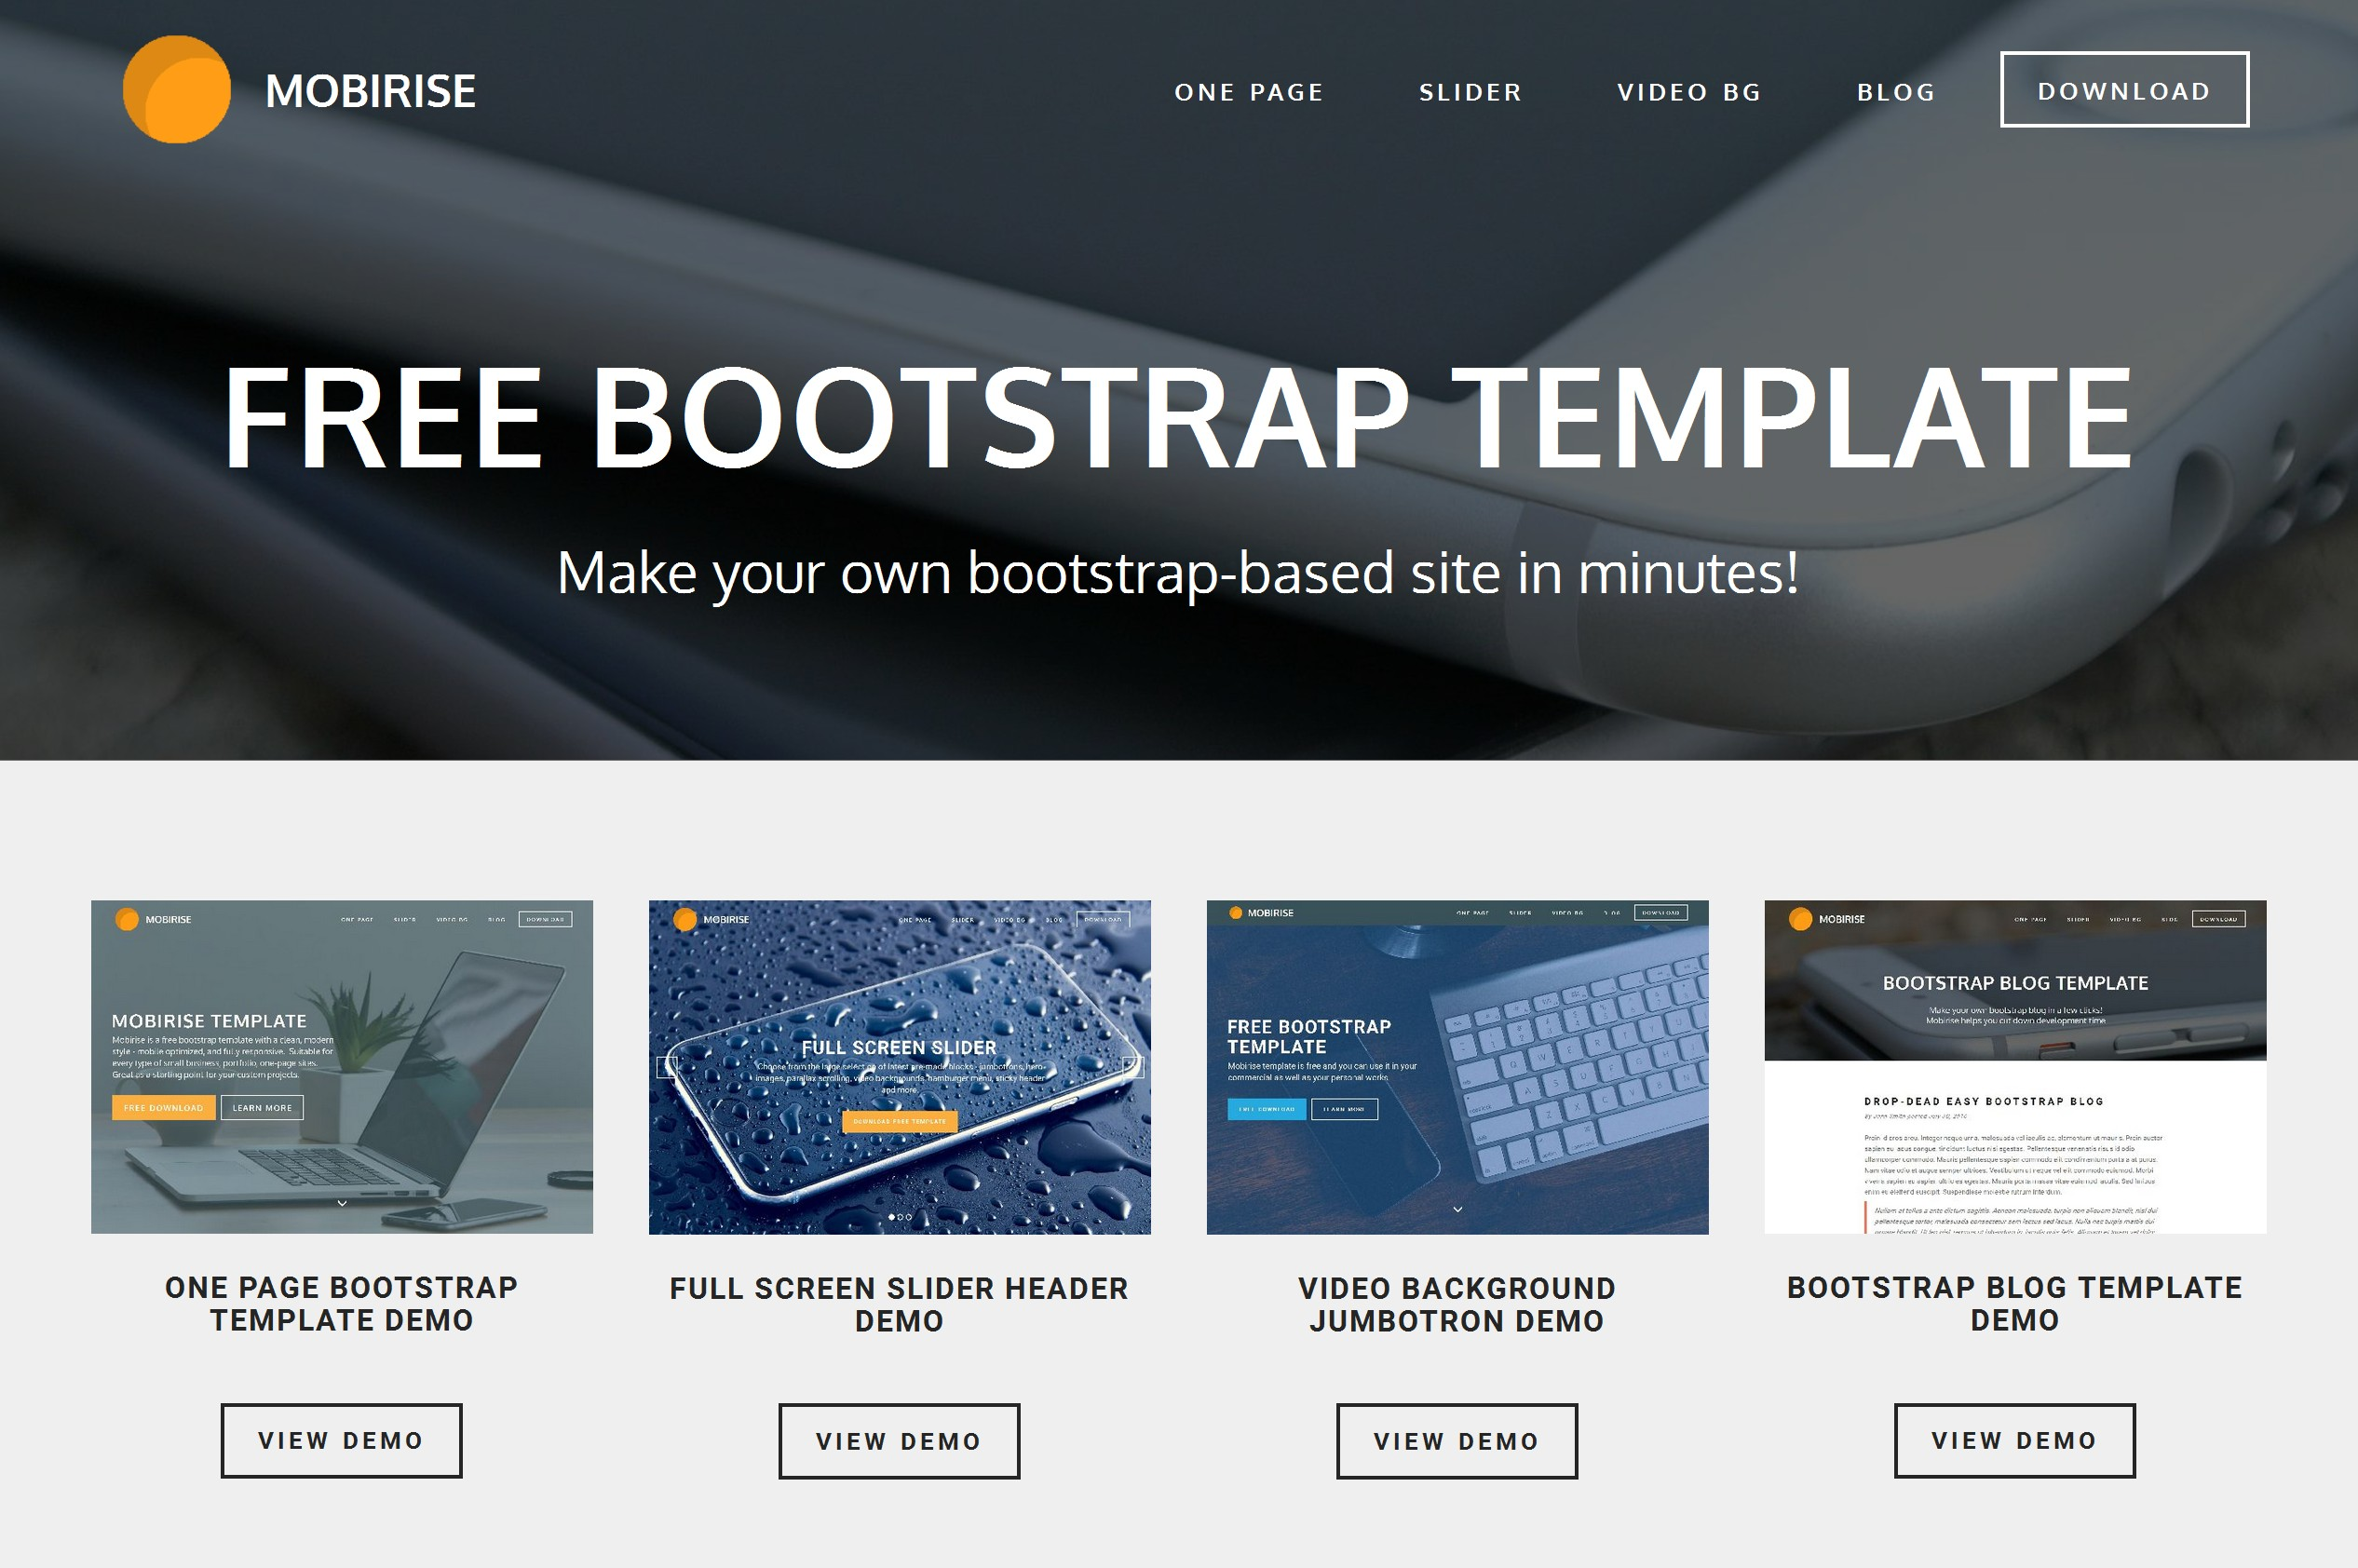 Free Bootstrap Template for Mobile-Friendly Websites